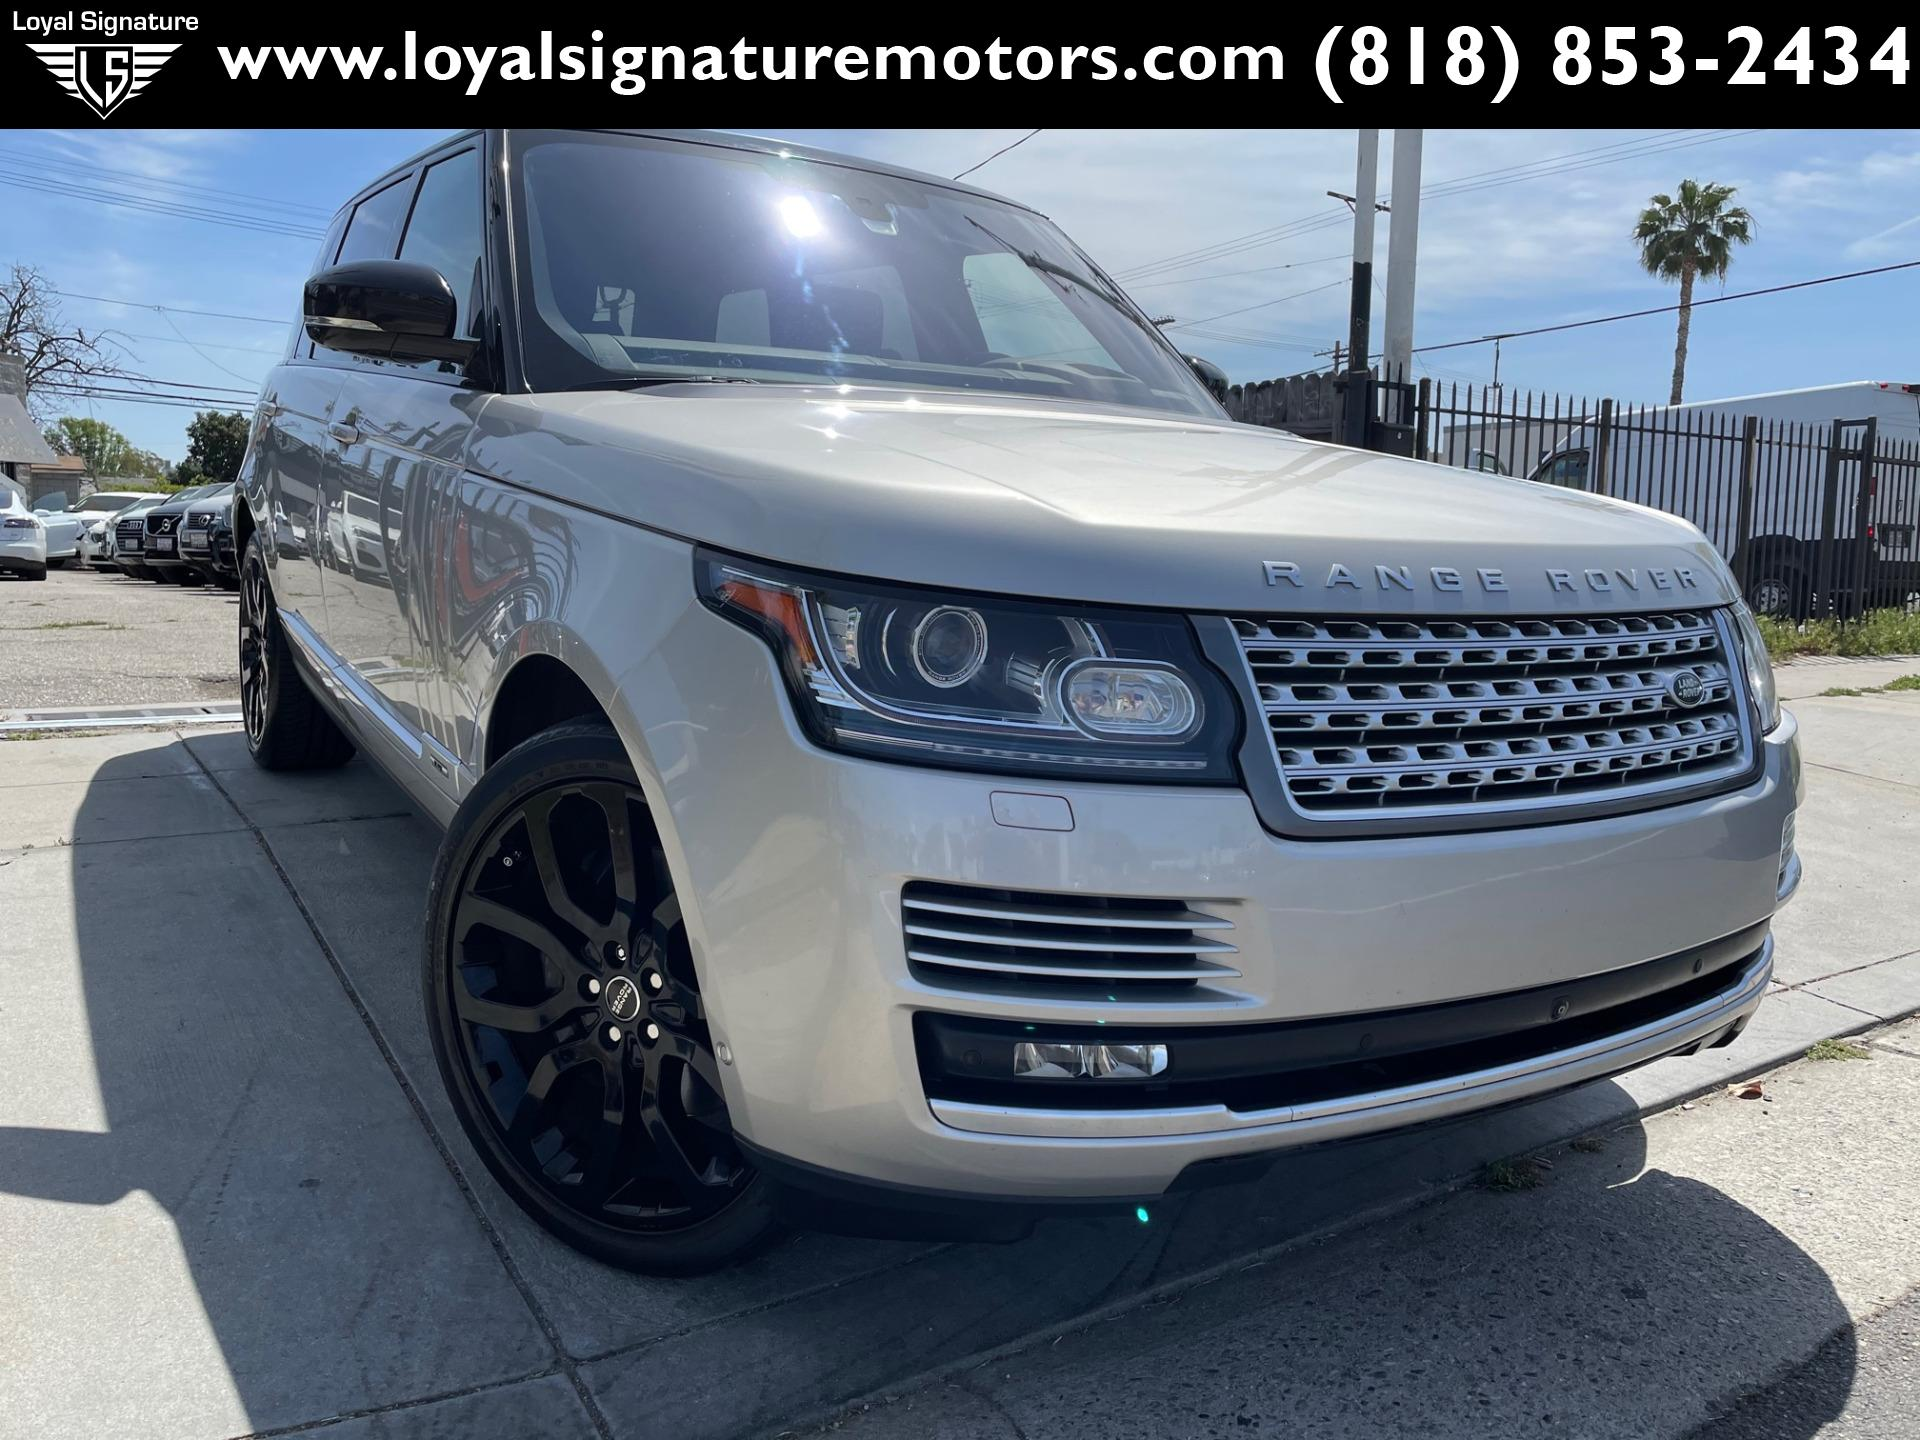 Used 2016 Land Rover Range Rover Supercharged LWB   Van Nuys, CA